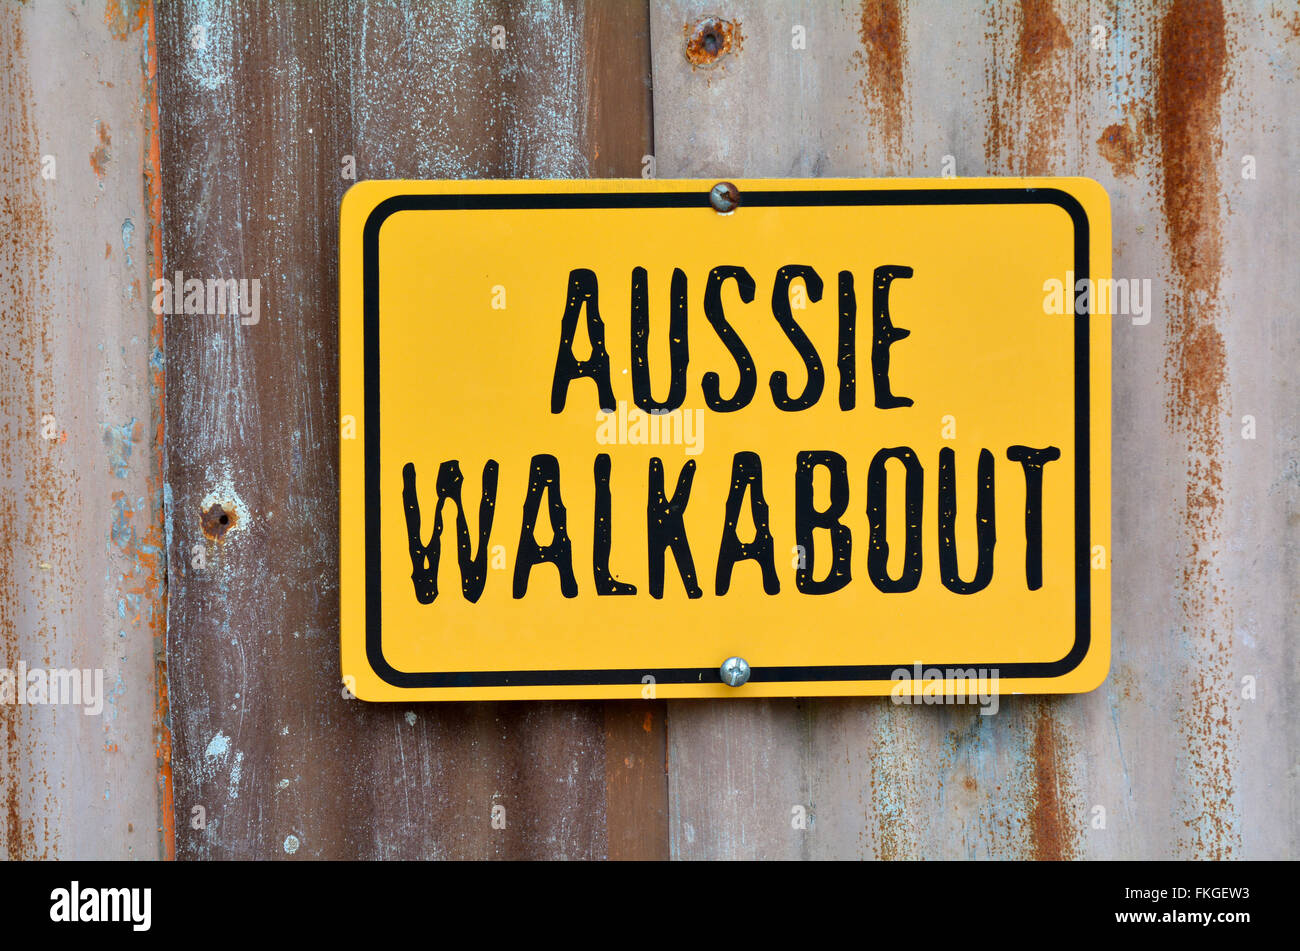 Aussie walkabout sign on an old barn wall. - Stock Image